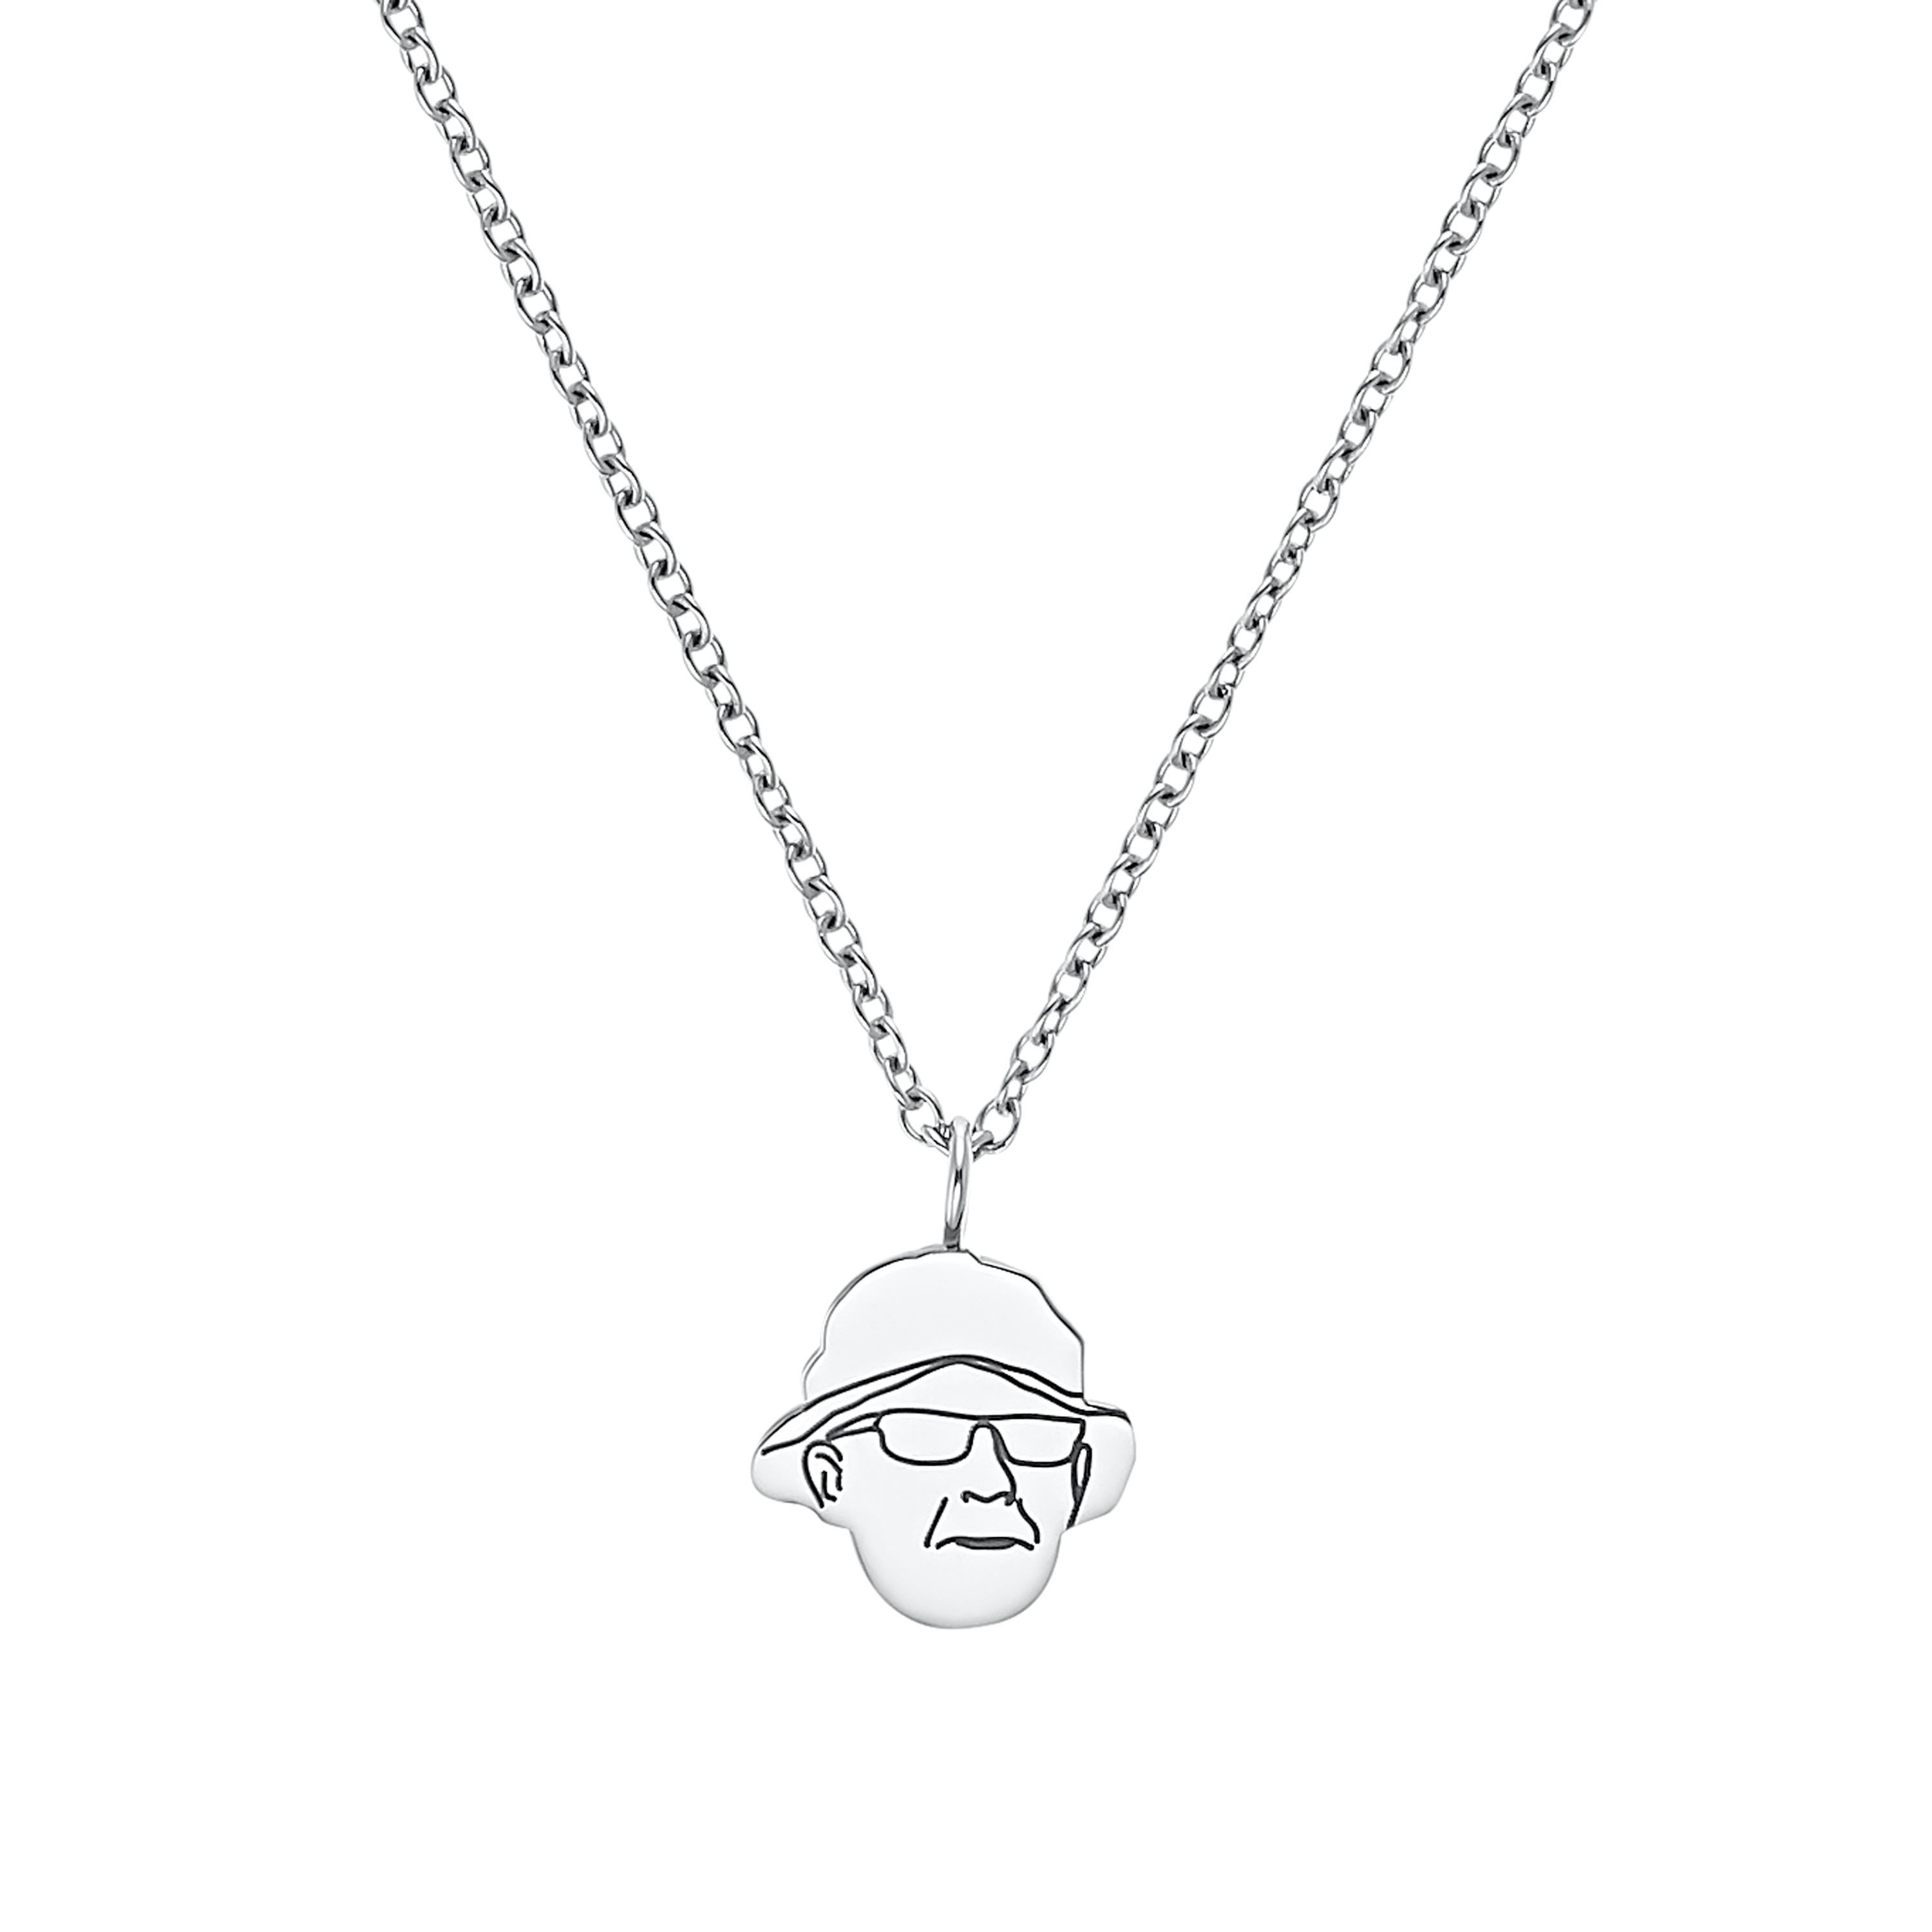 Kette mit Anhänger Unisex, Stainless Steel, Special Edition Gramps